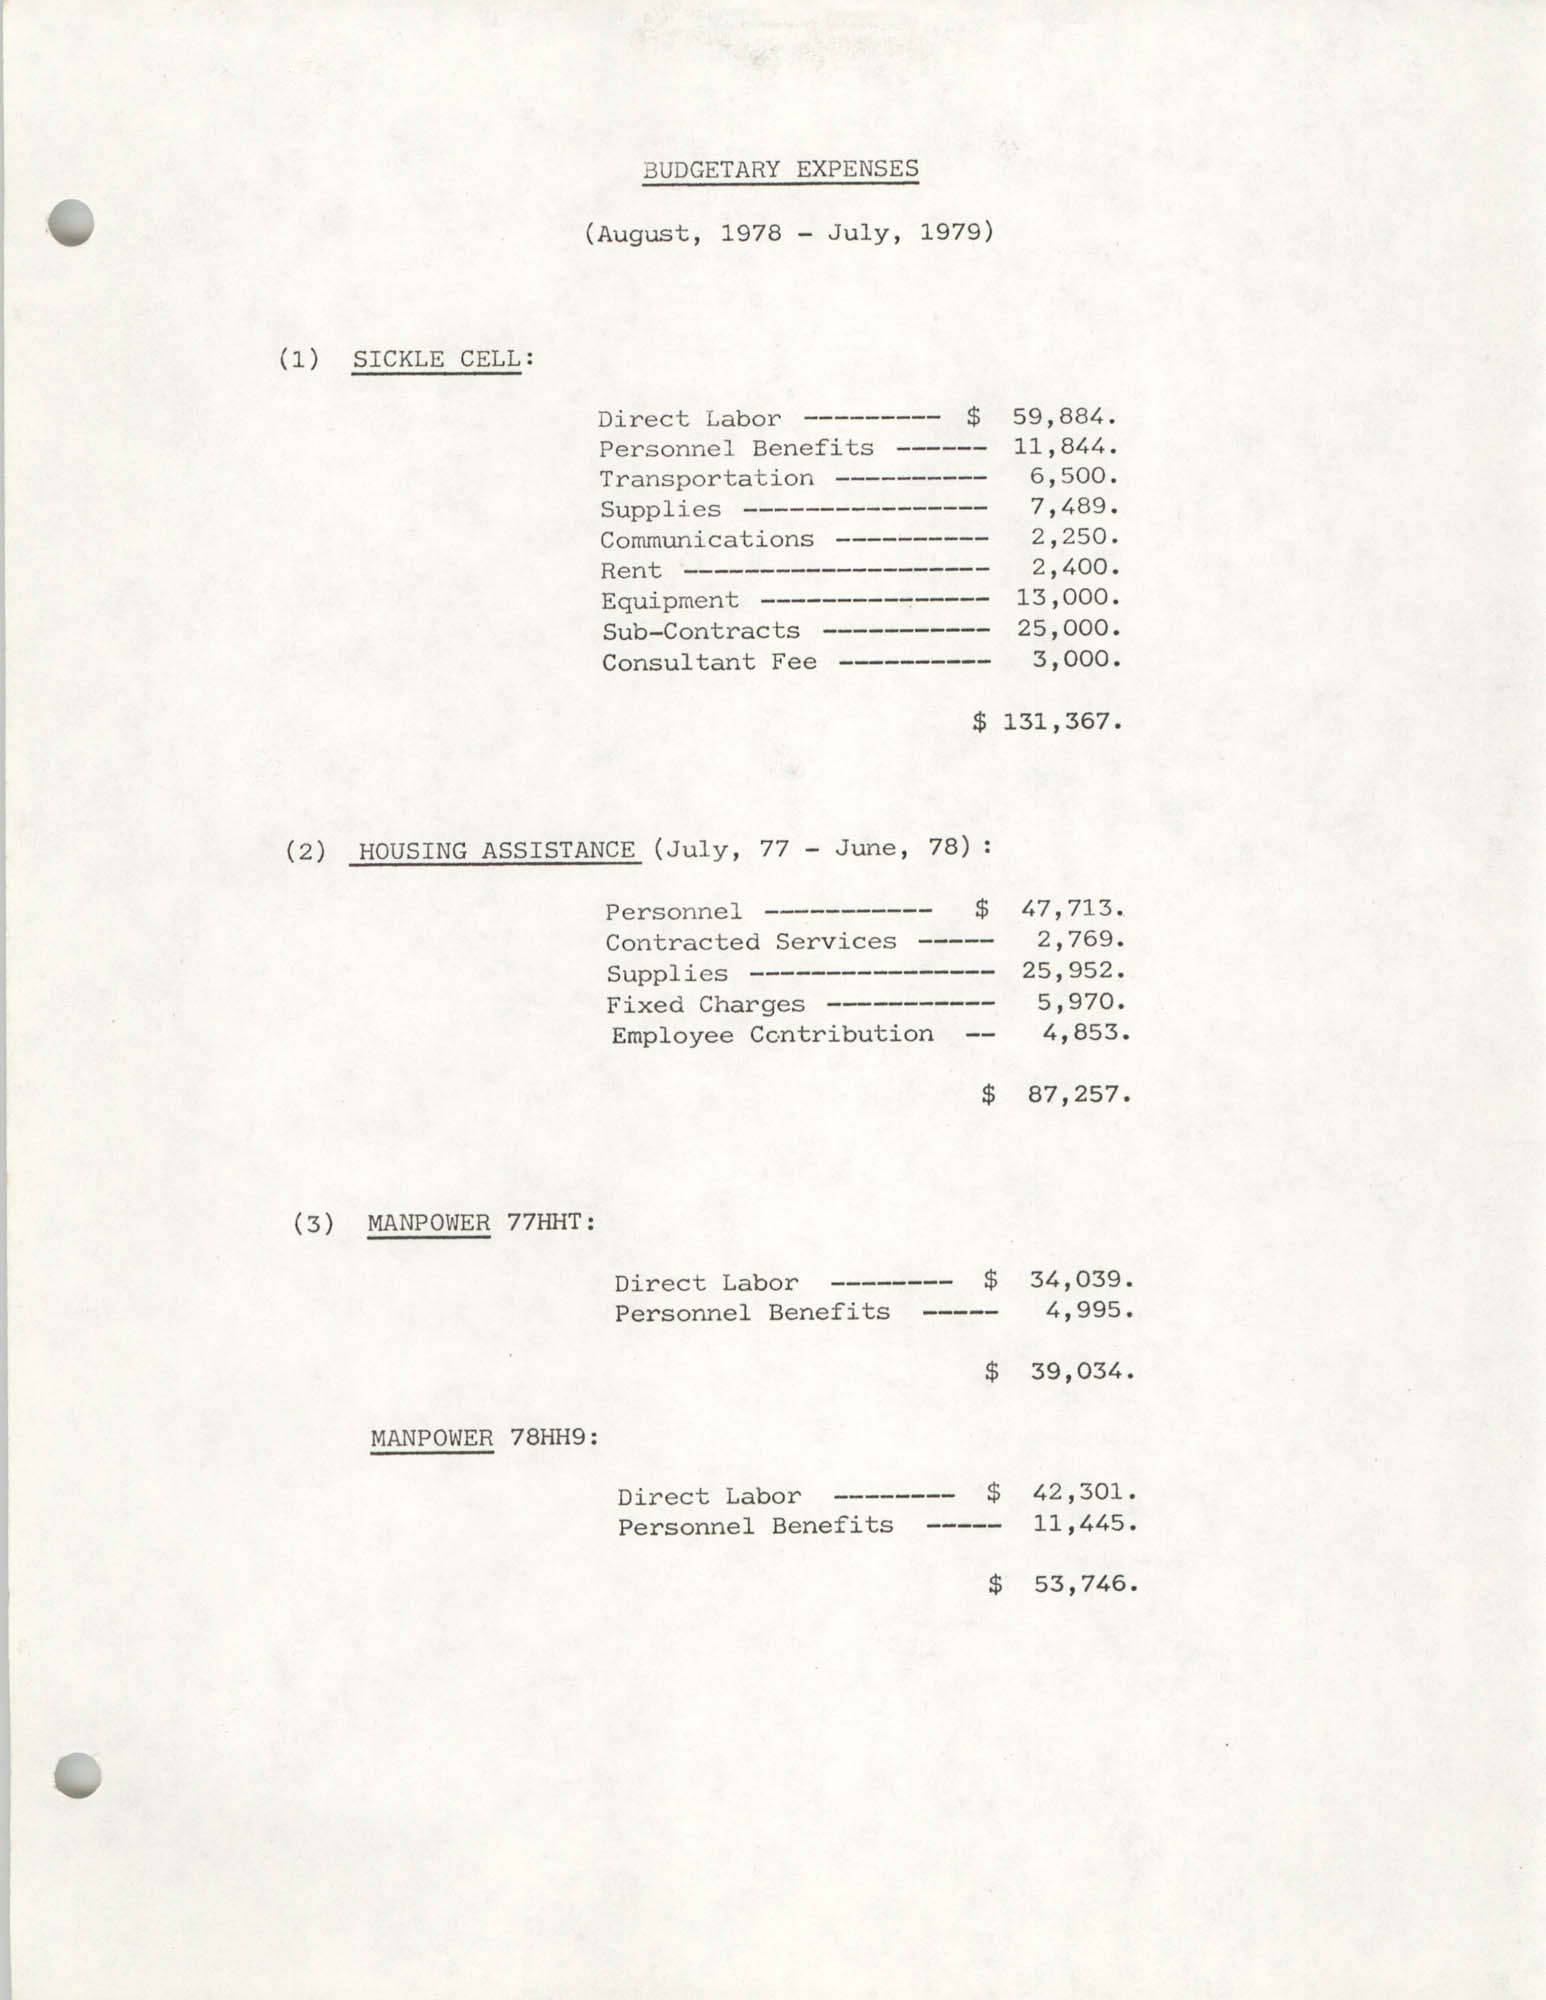 COBRA Budgetary Expenses, August 1978 to July 1979, Page 1